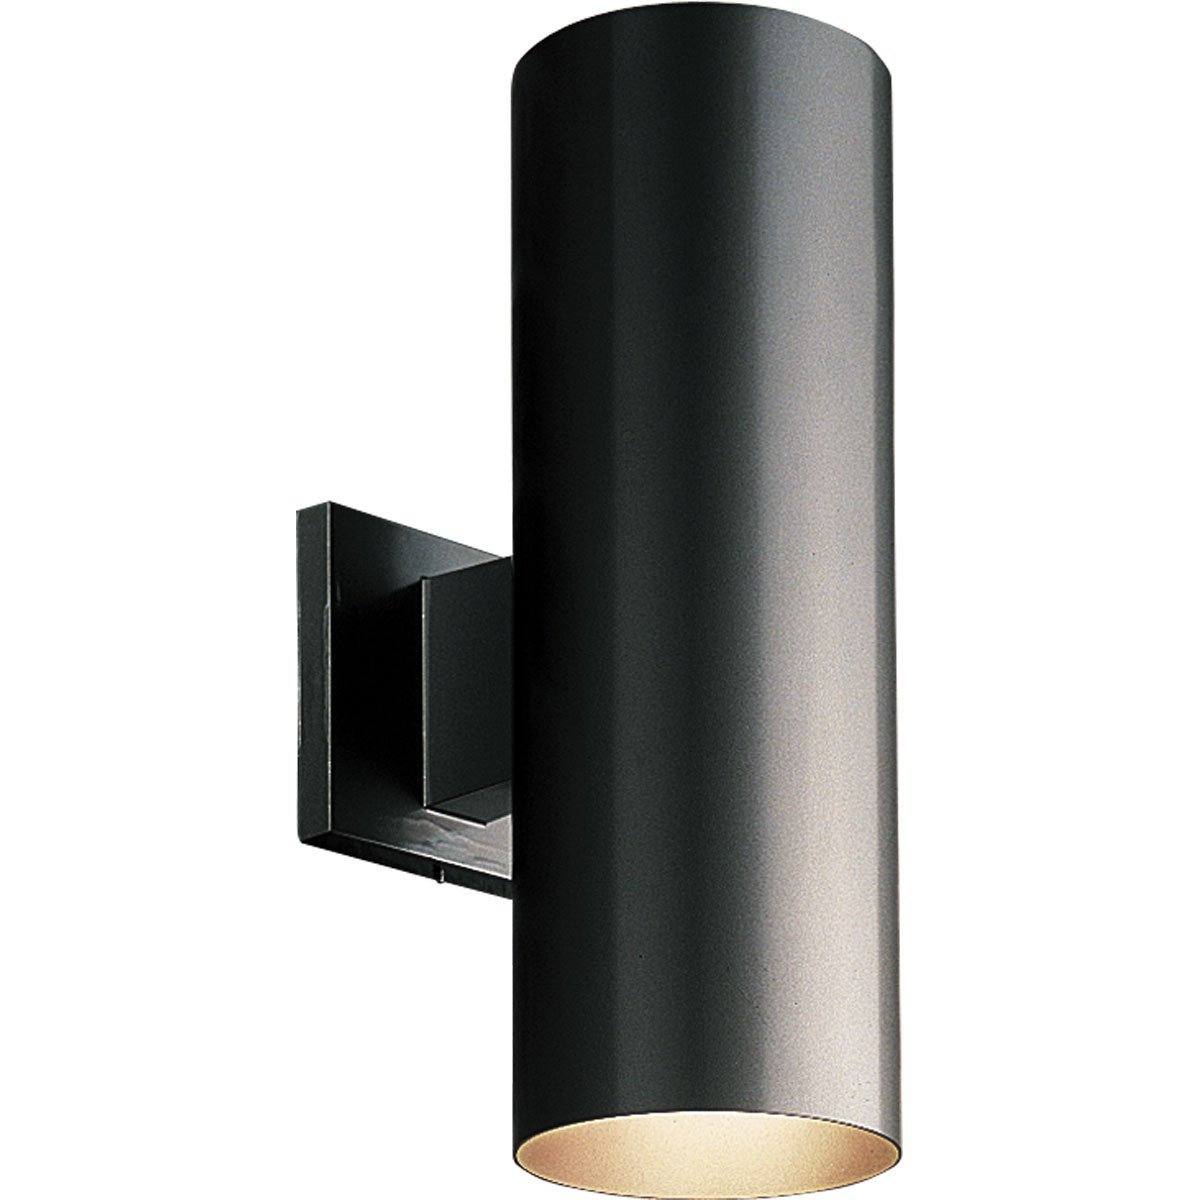 Progress Lighting P5675-31 5-Inch Up/Down Cylinder with Heavy Duty Aluminum Construction and Die Cast Wall Bracket Powder Coated Finish UL Listed For Wet Locations, Black